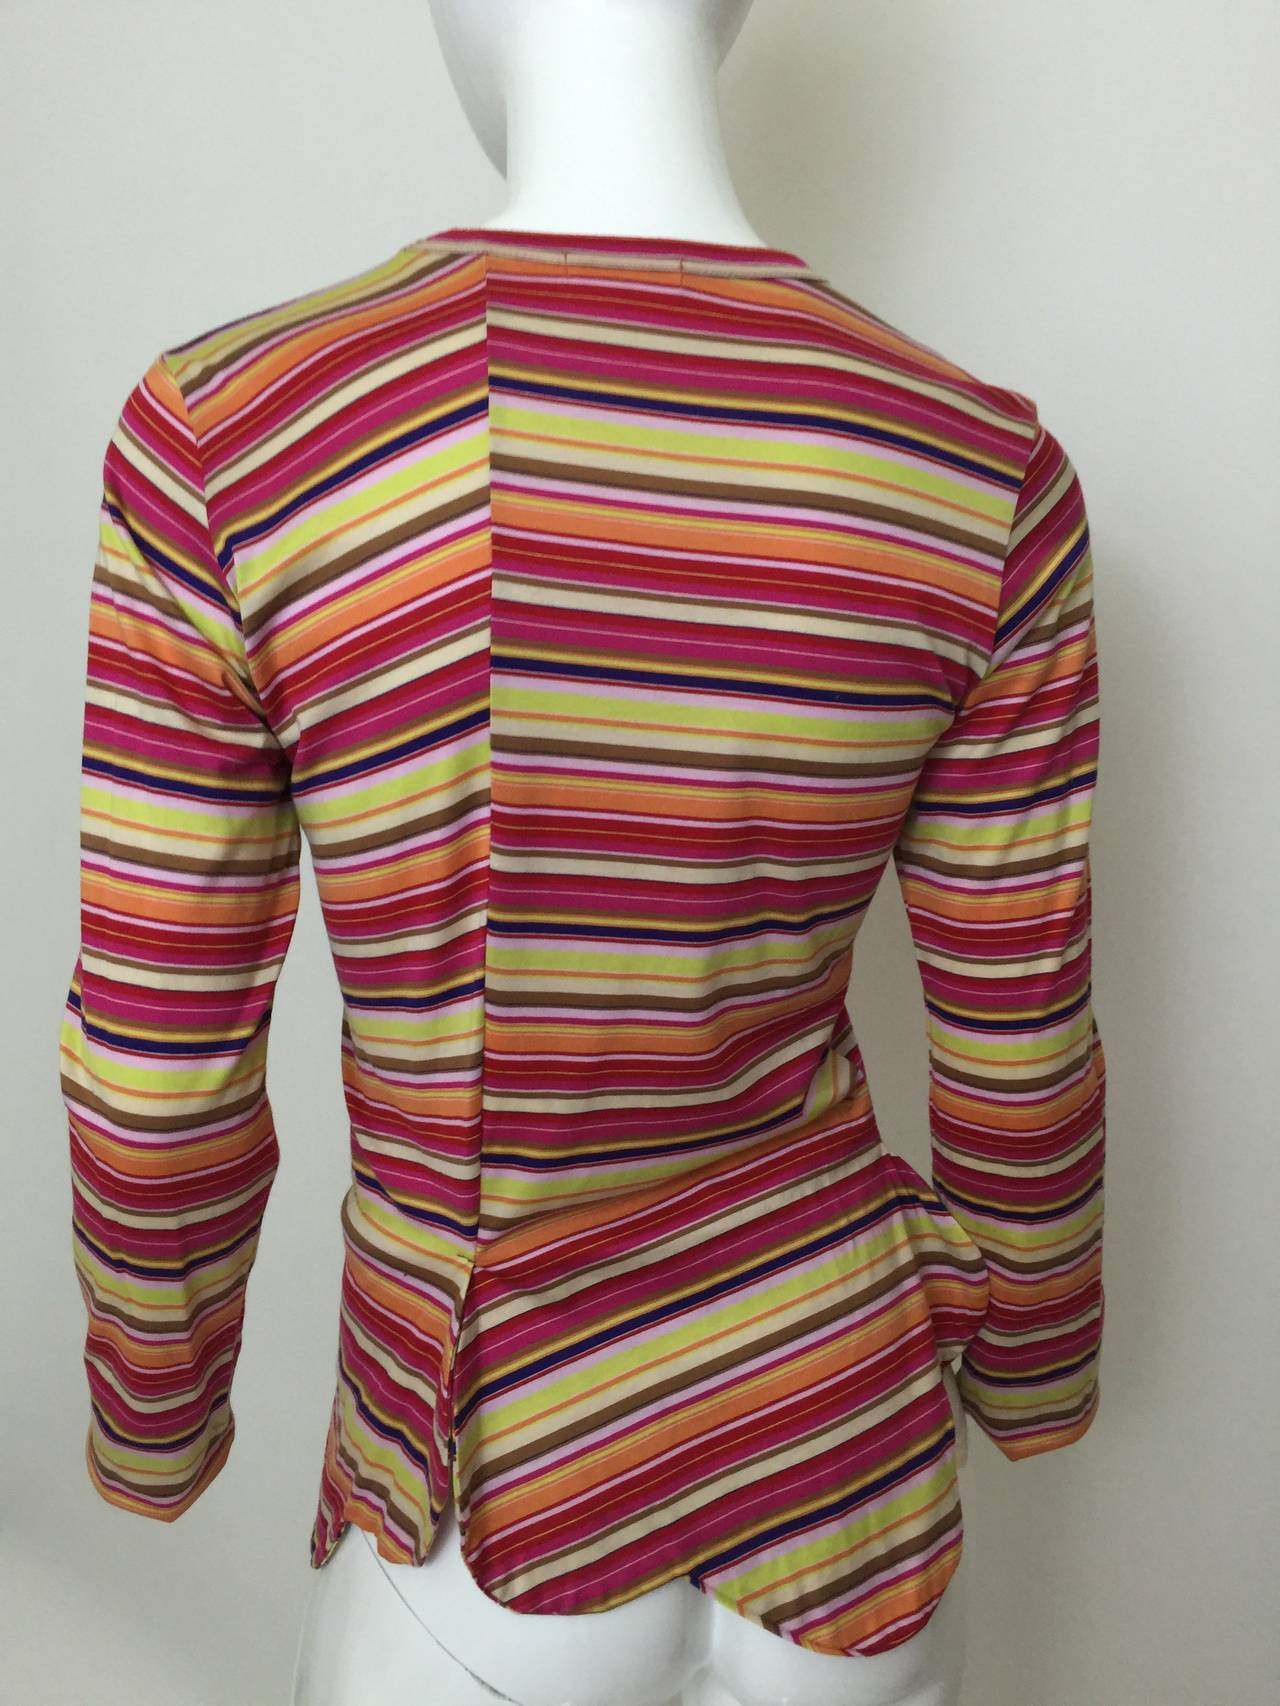 Comme des Garcons multi stripe Shirt 1990's For Sale 2